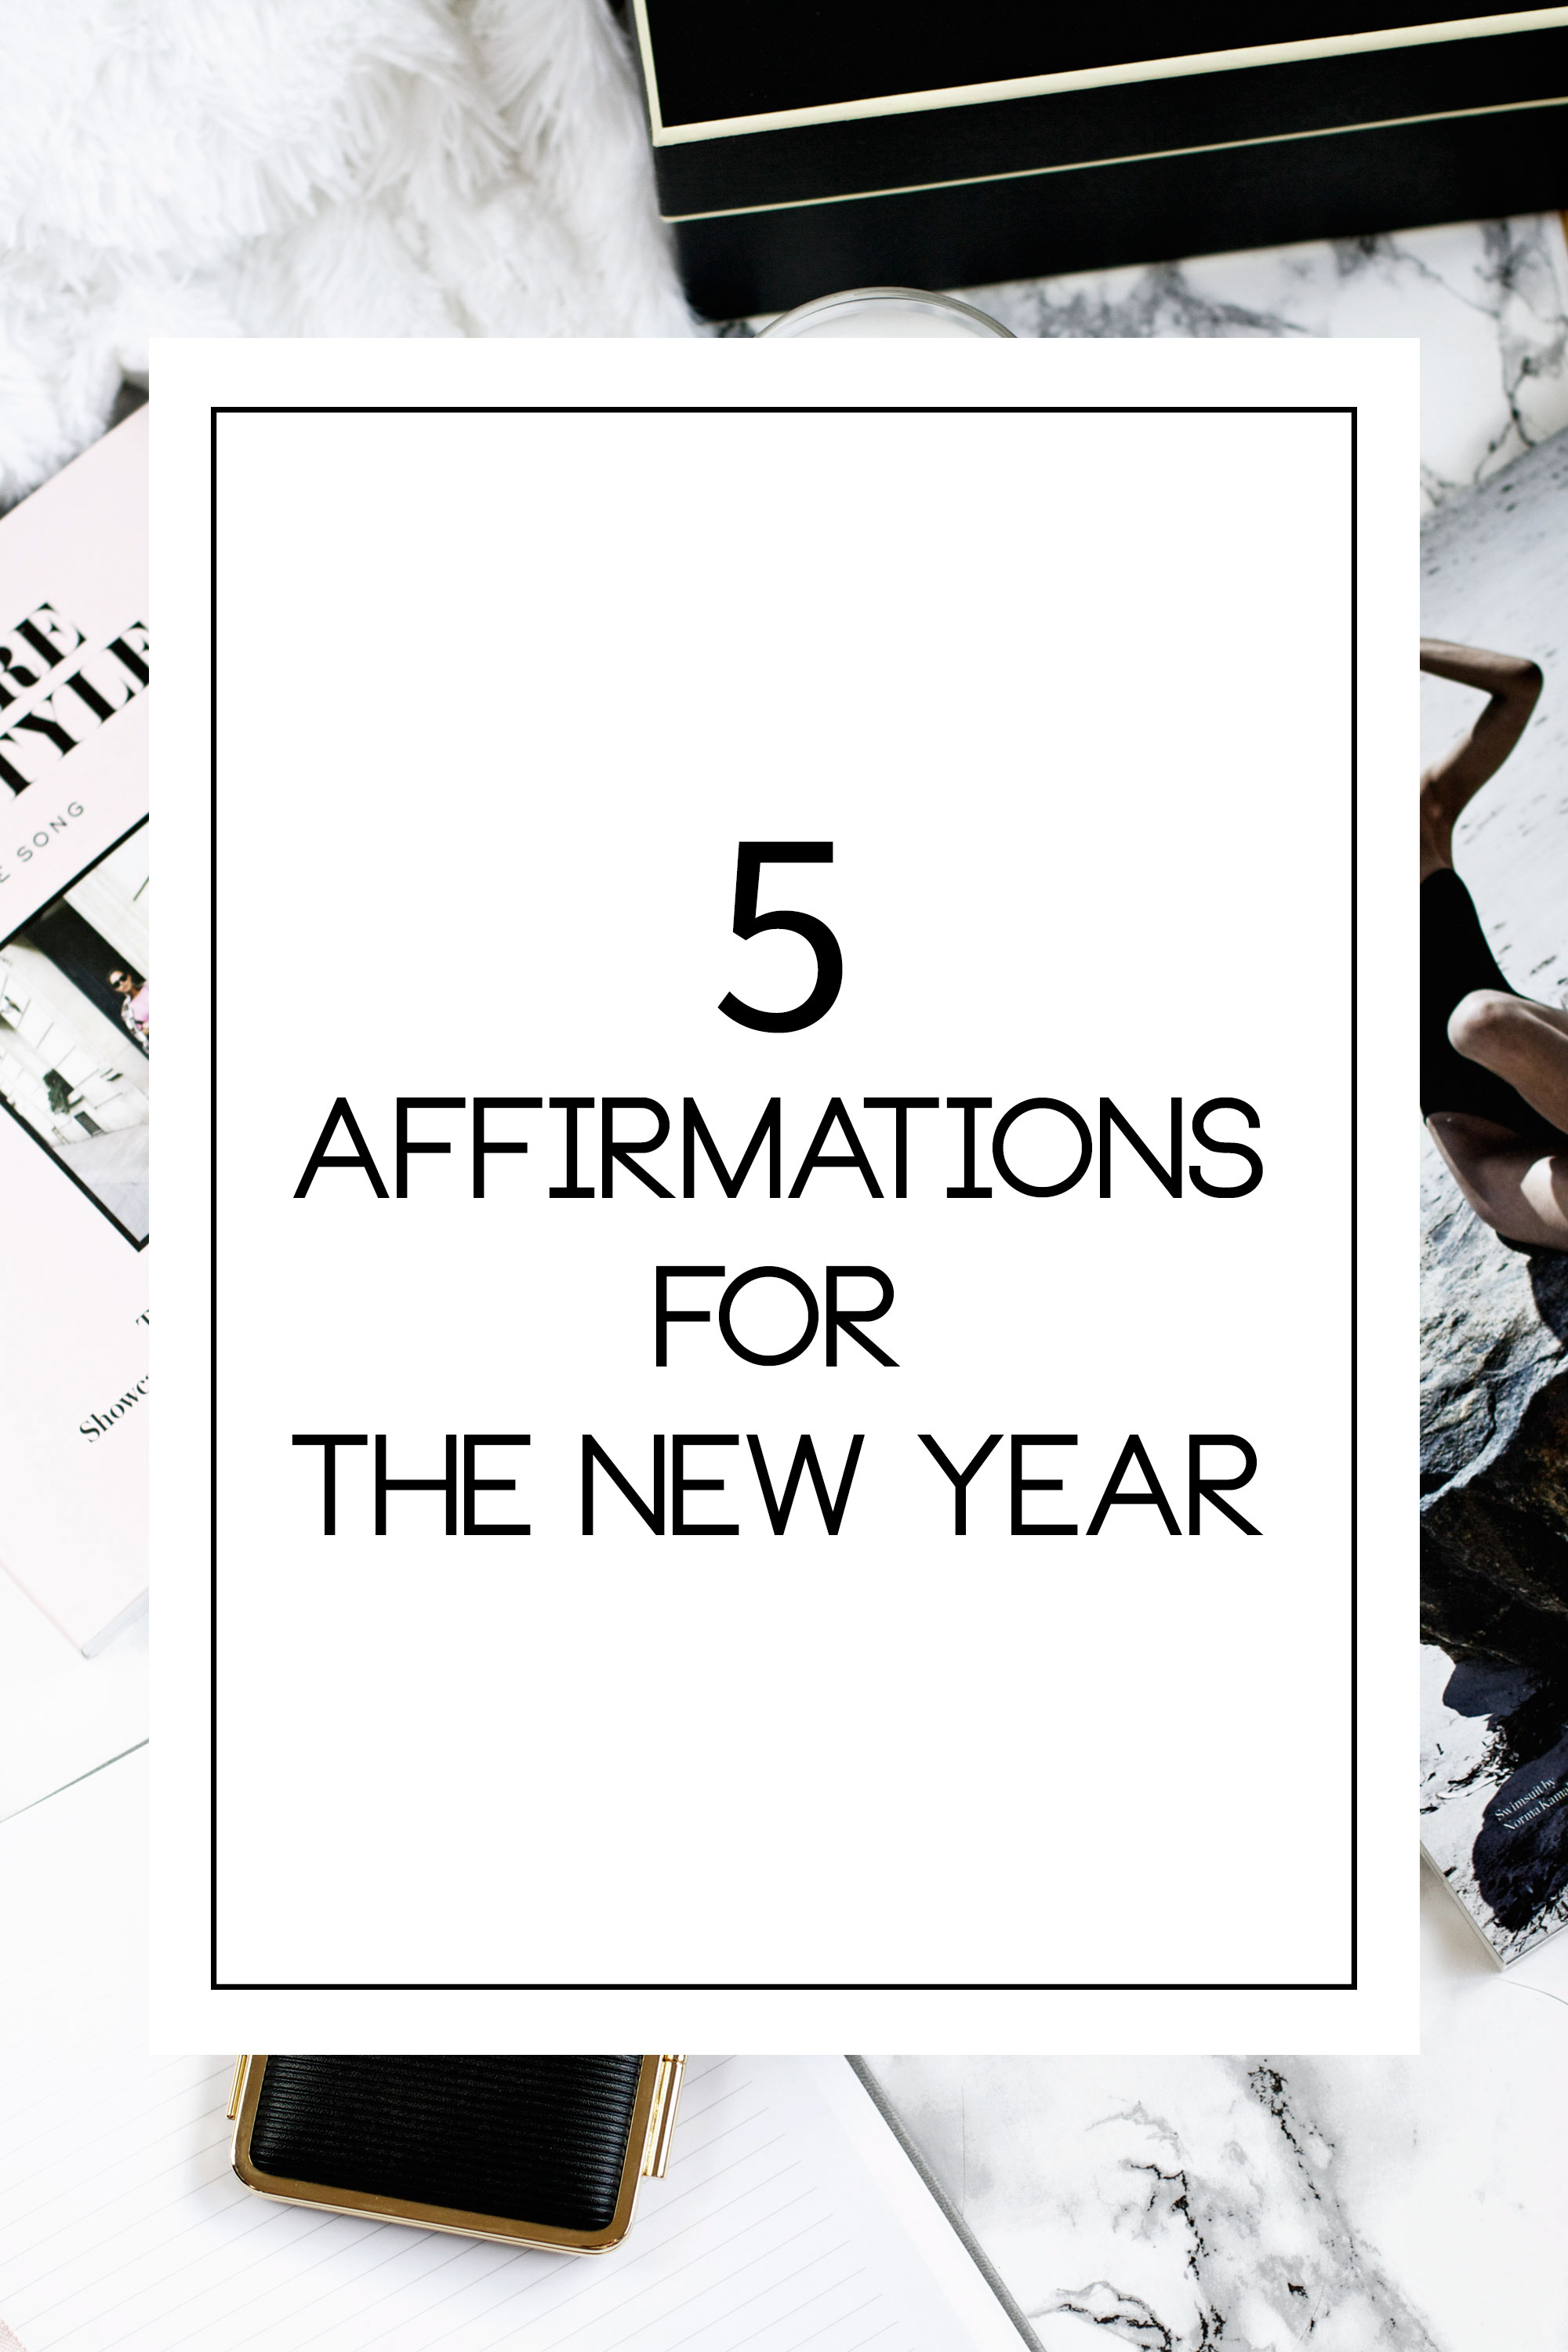 Affirmations for the New Year